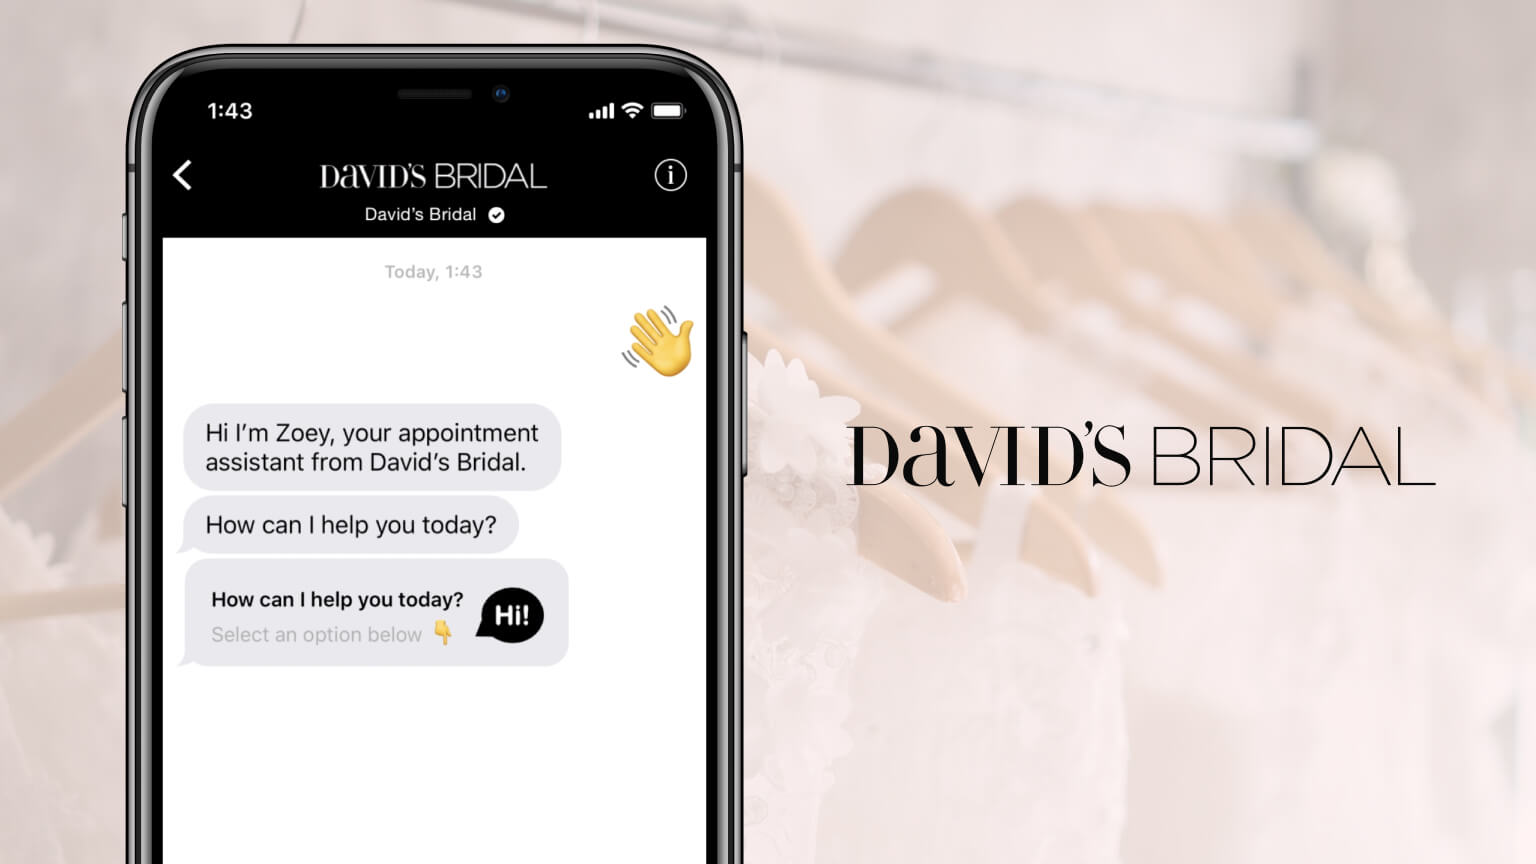 Chatbot helping book an appointment via text message